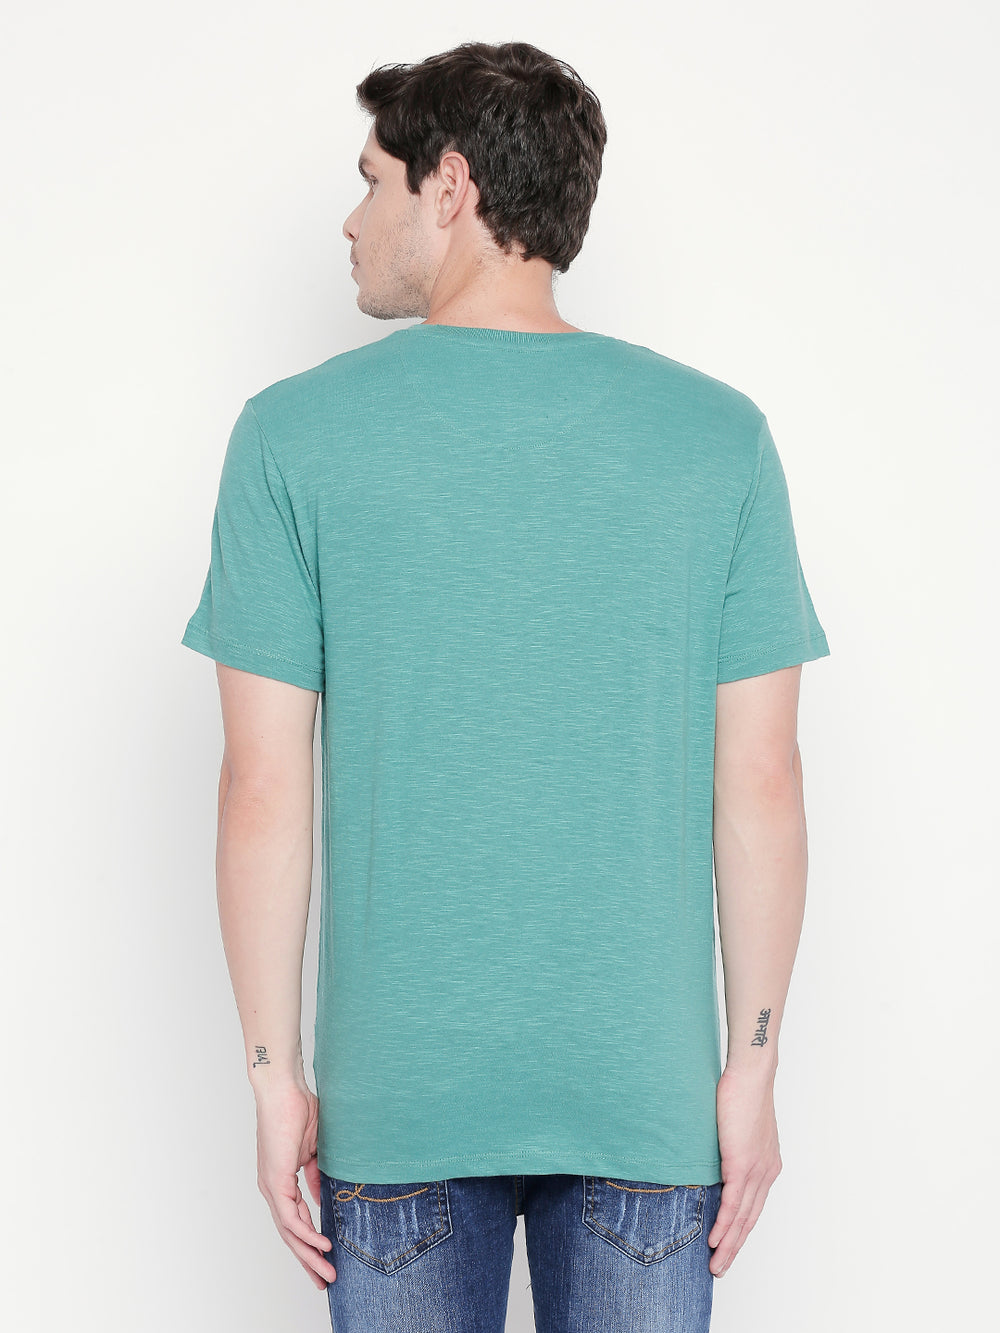 Light Sea Green Disrupt Graphic Print Regular-Fit T-shirt